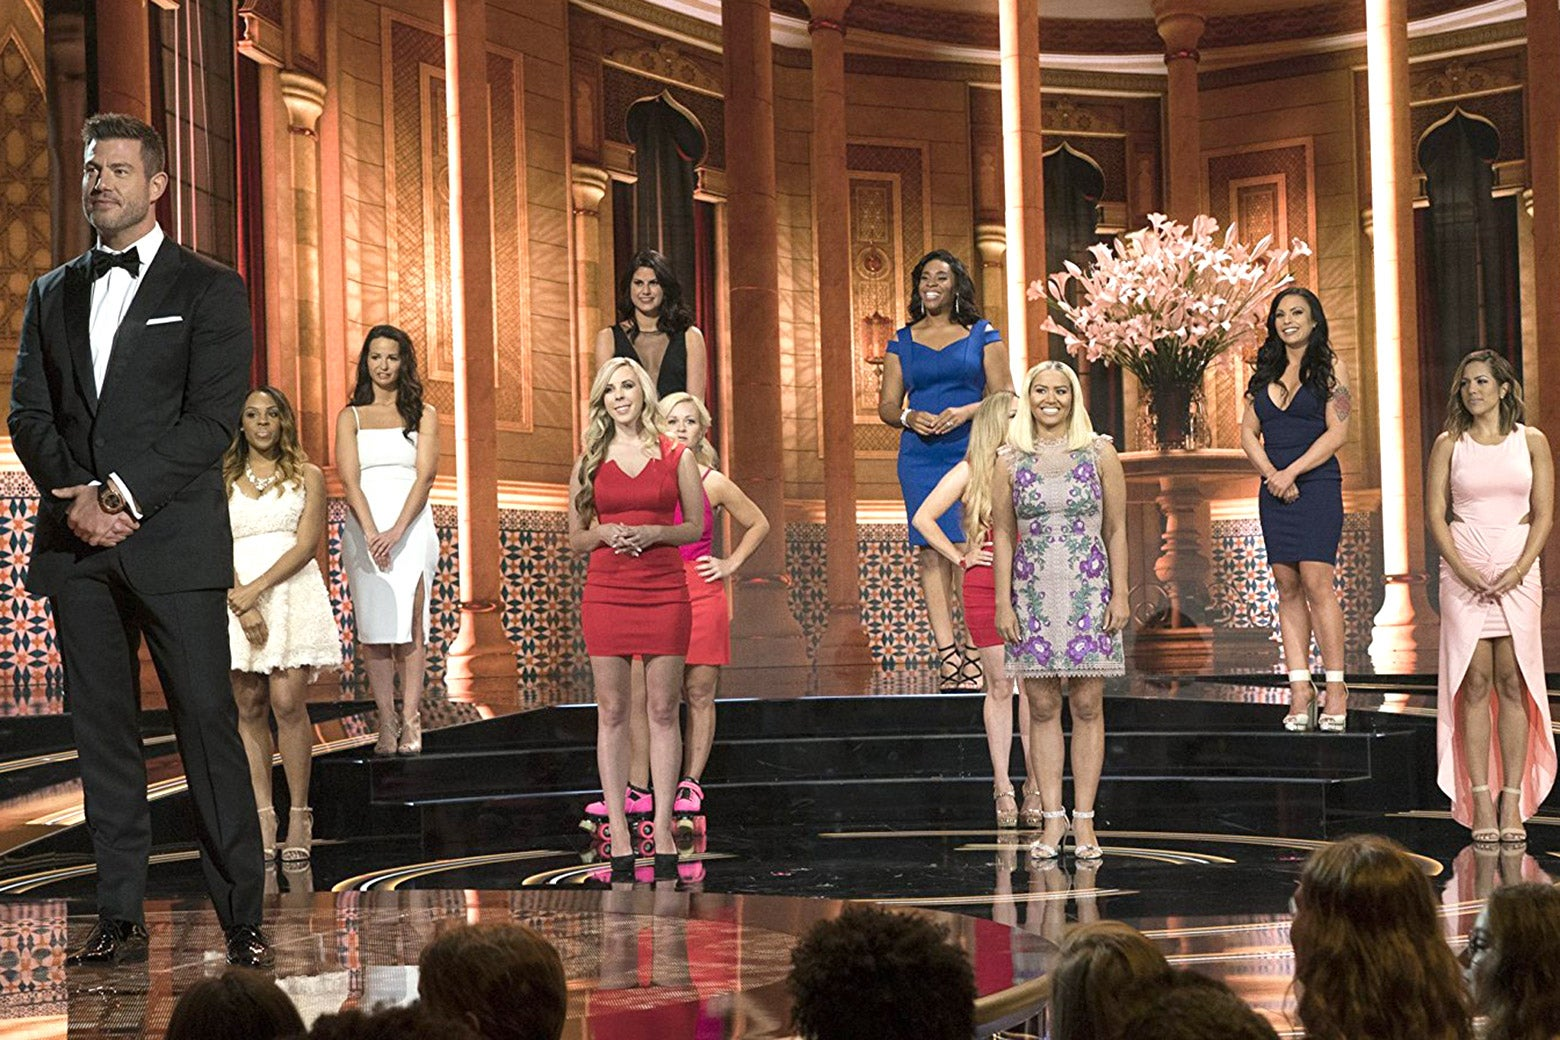 The contestants of The Proposal stand on stage.